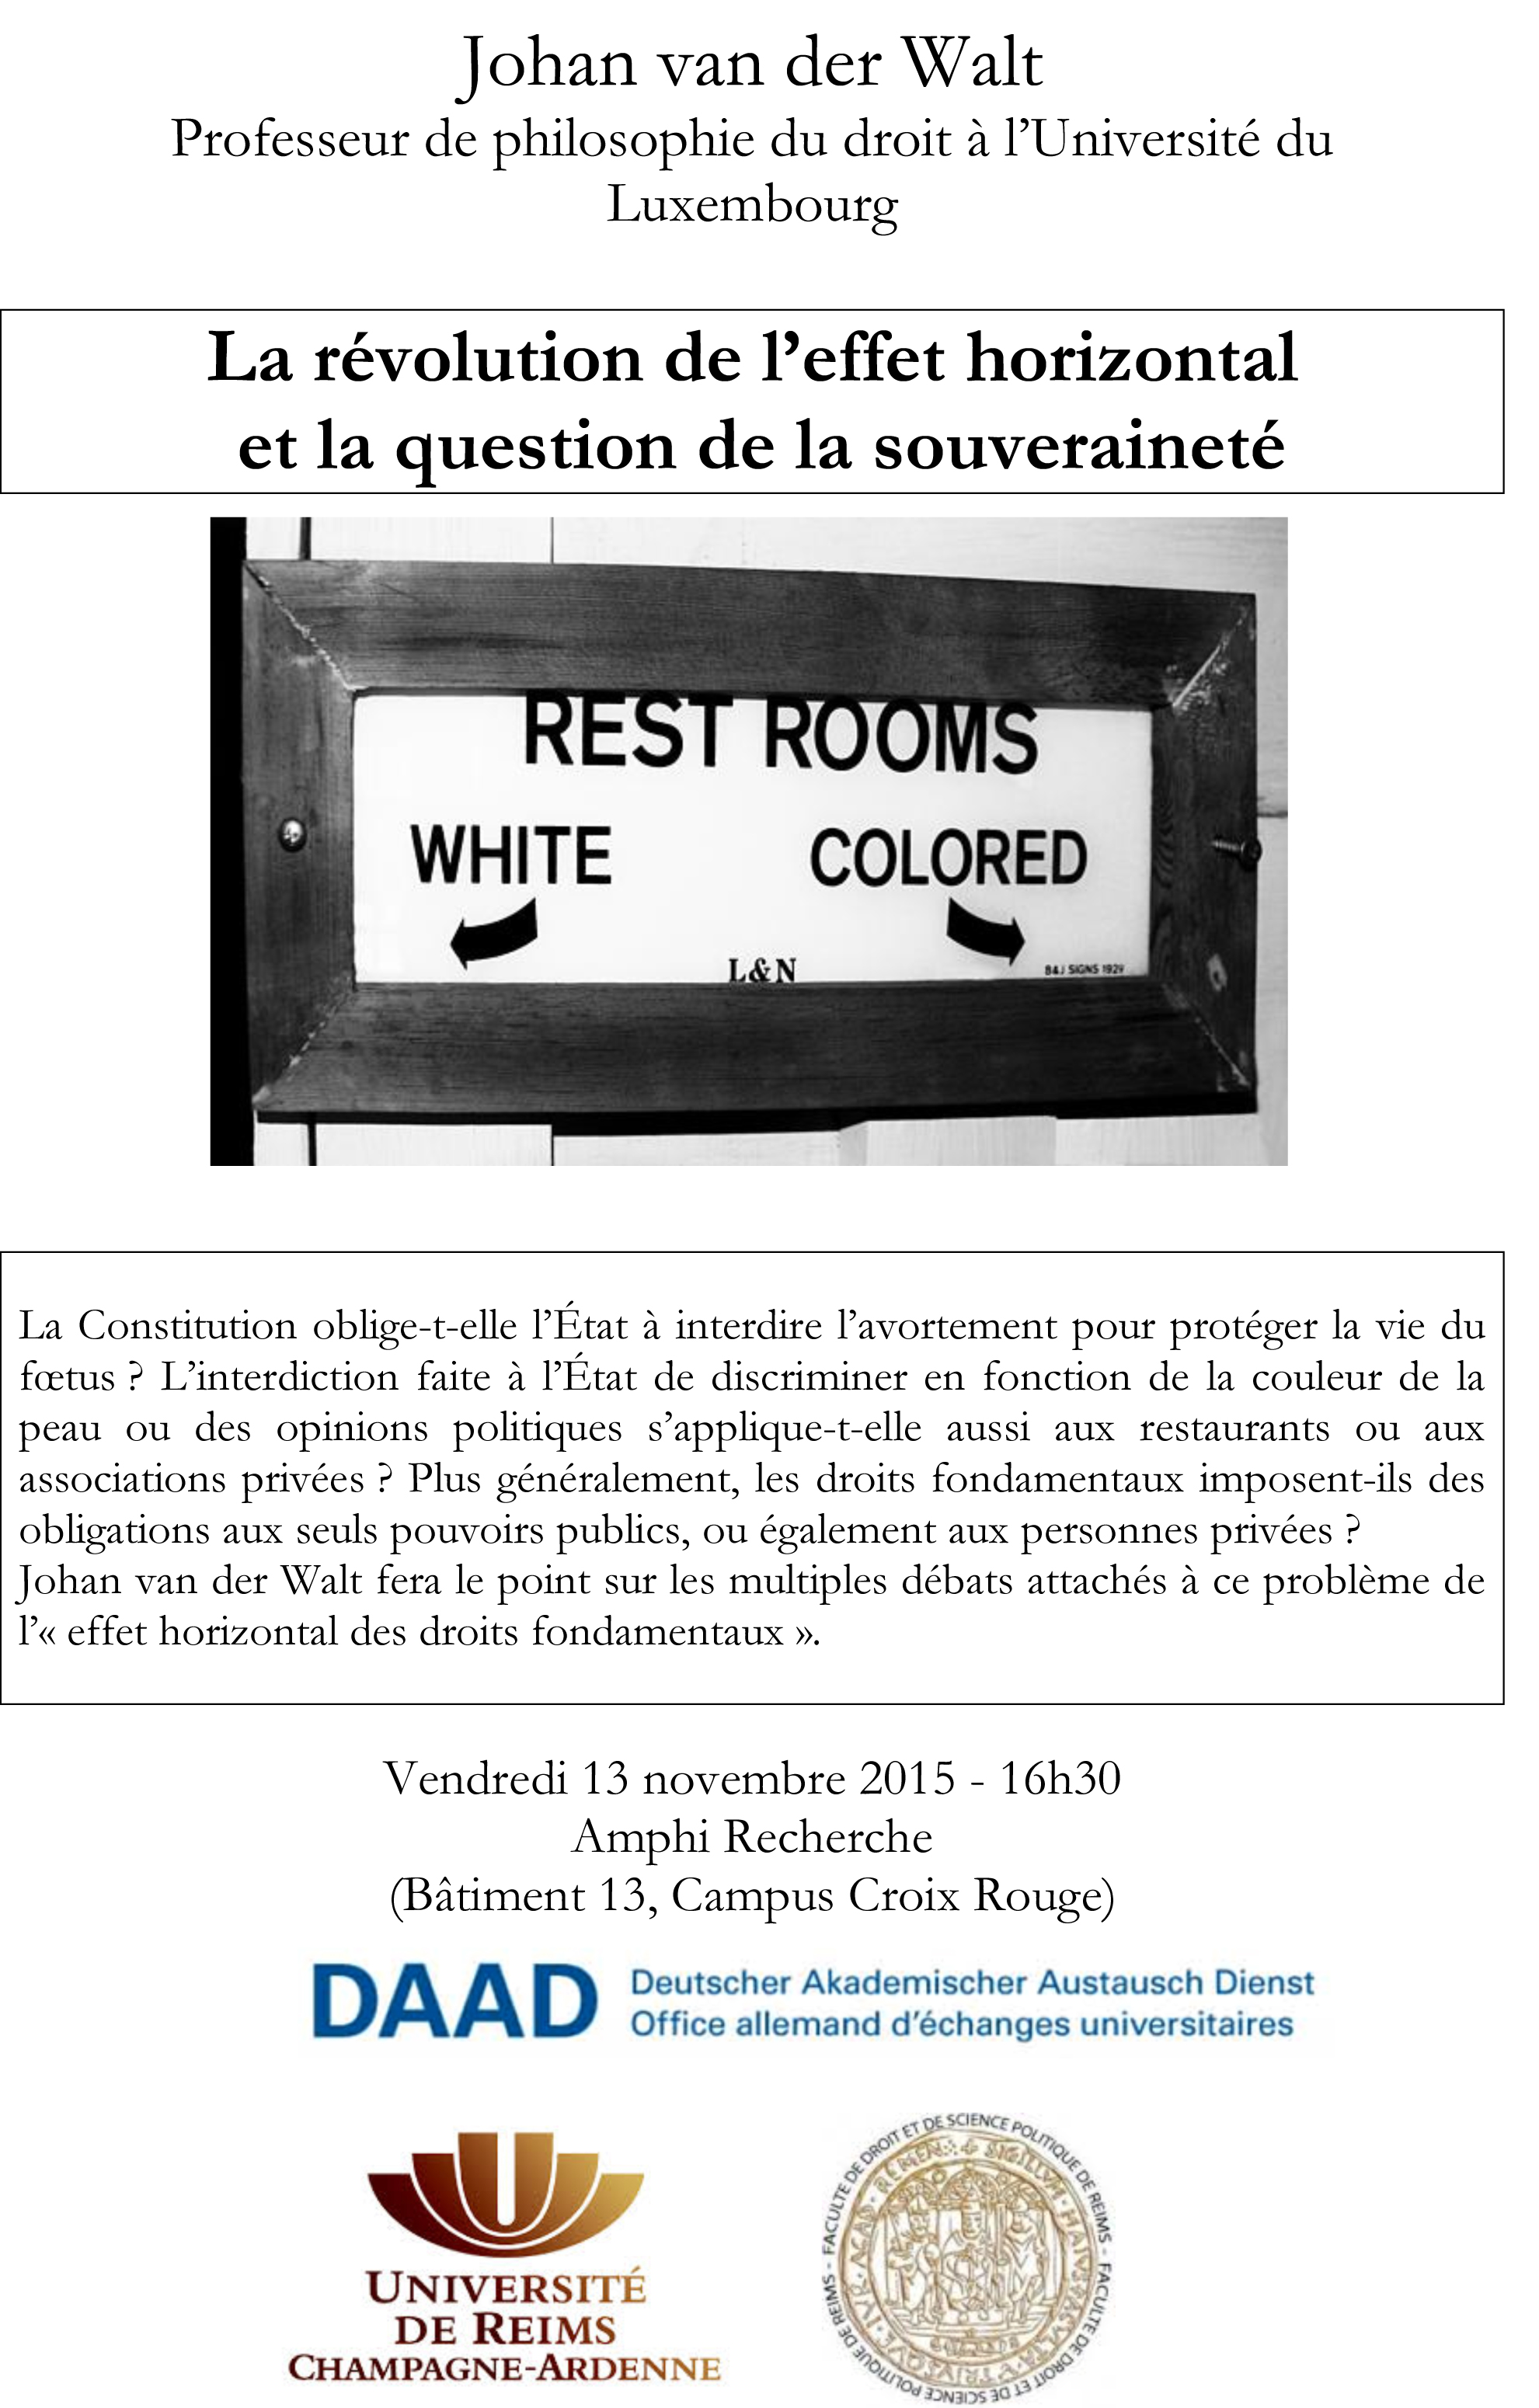 Colloque - Iut reims bureau virtuel ...